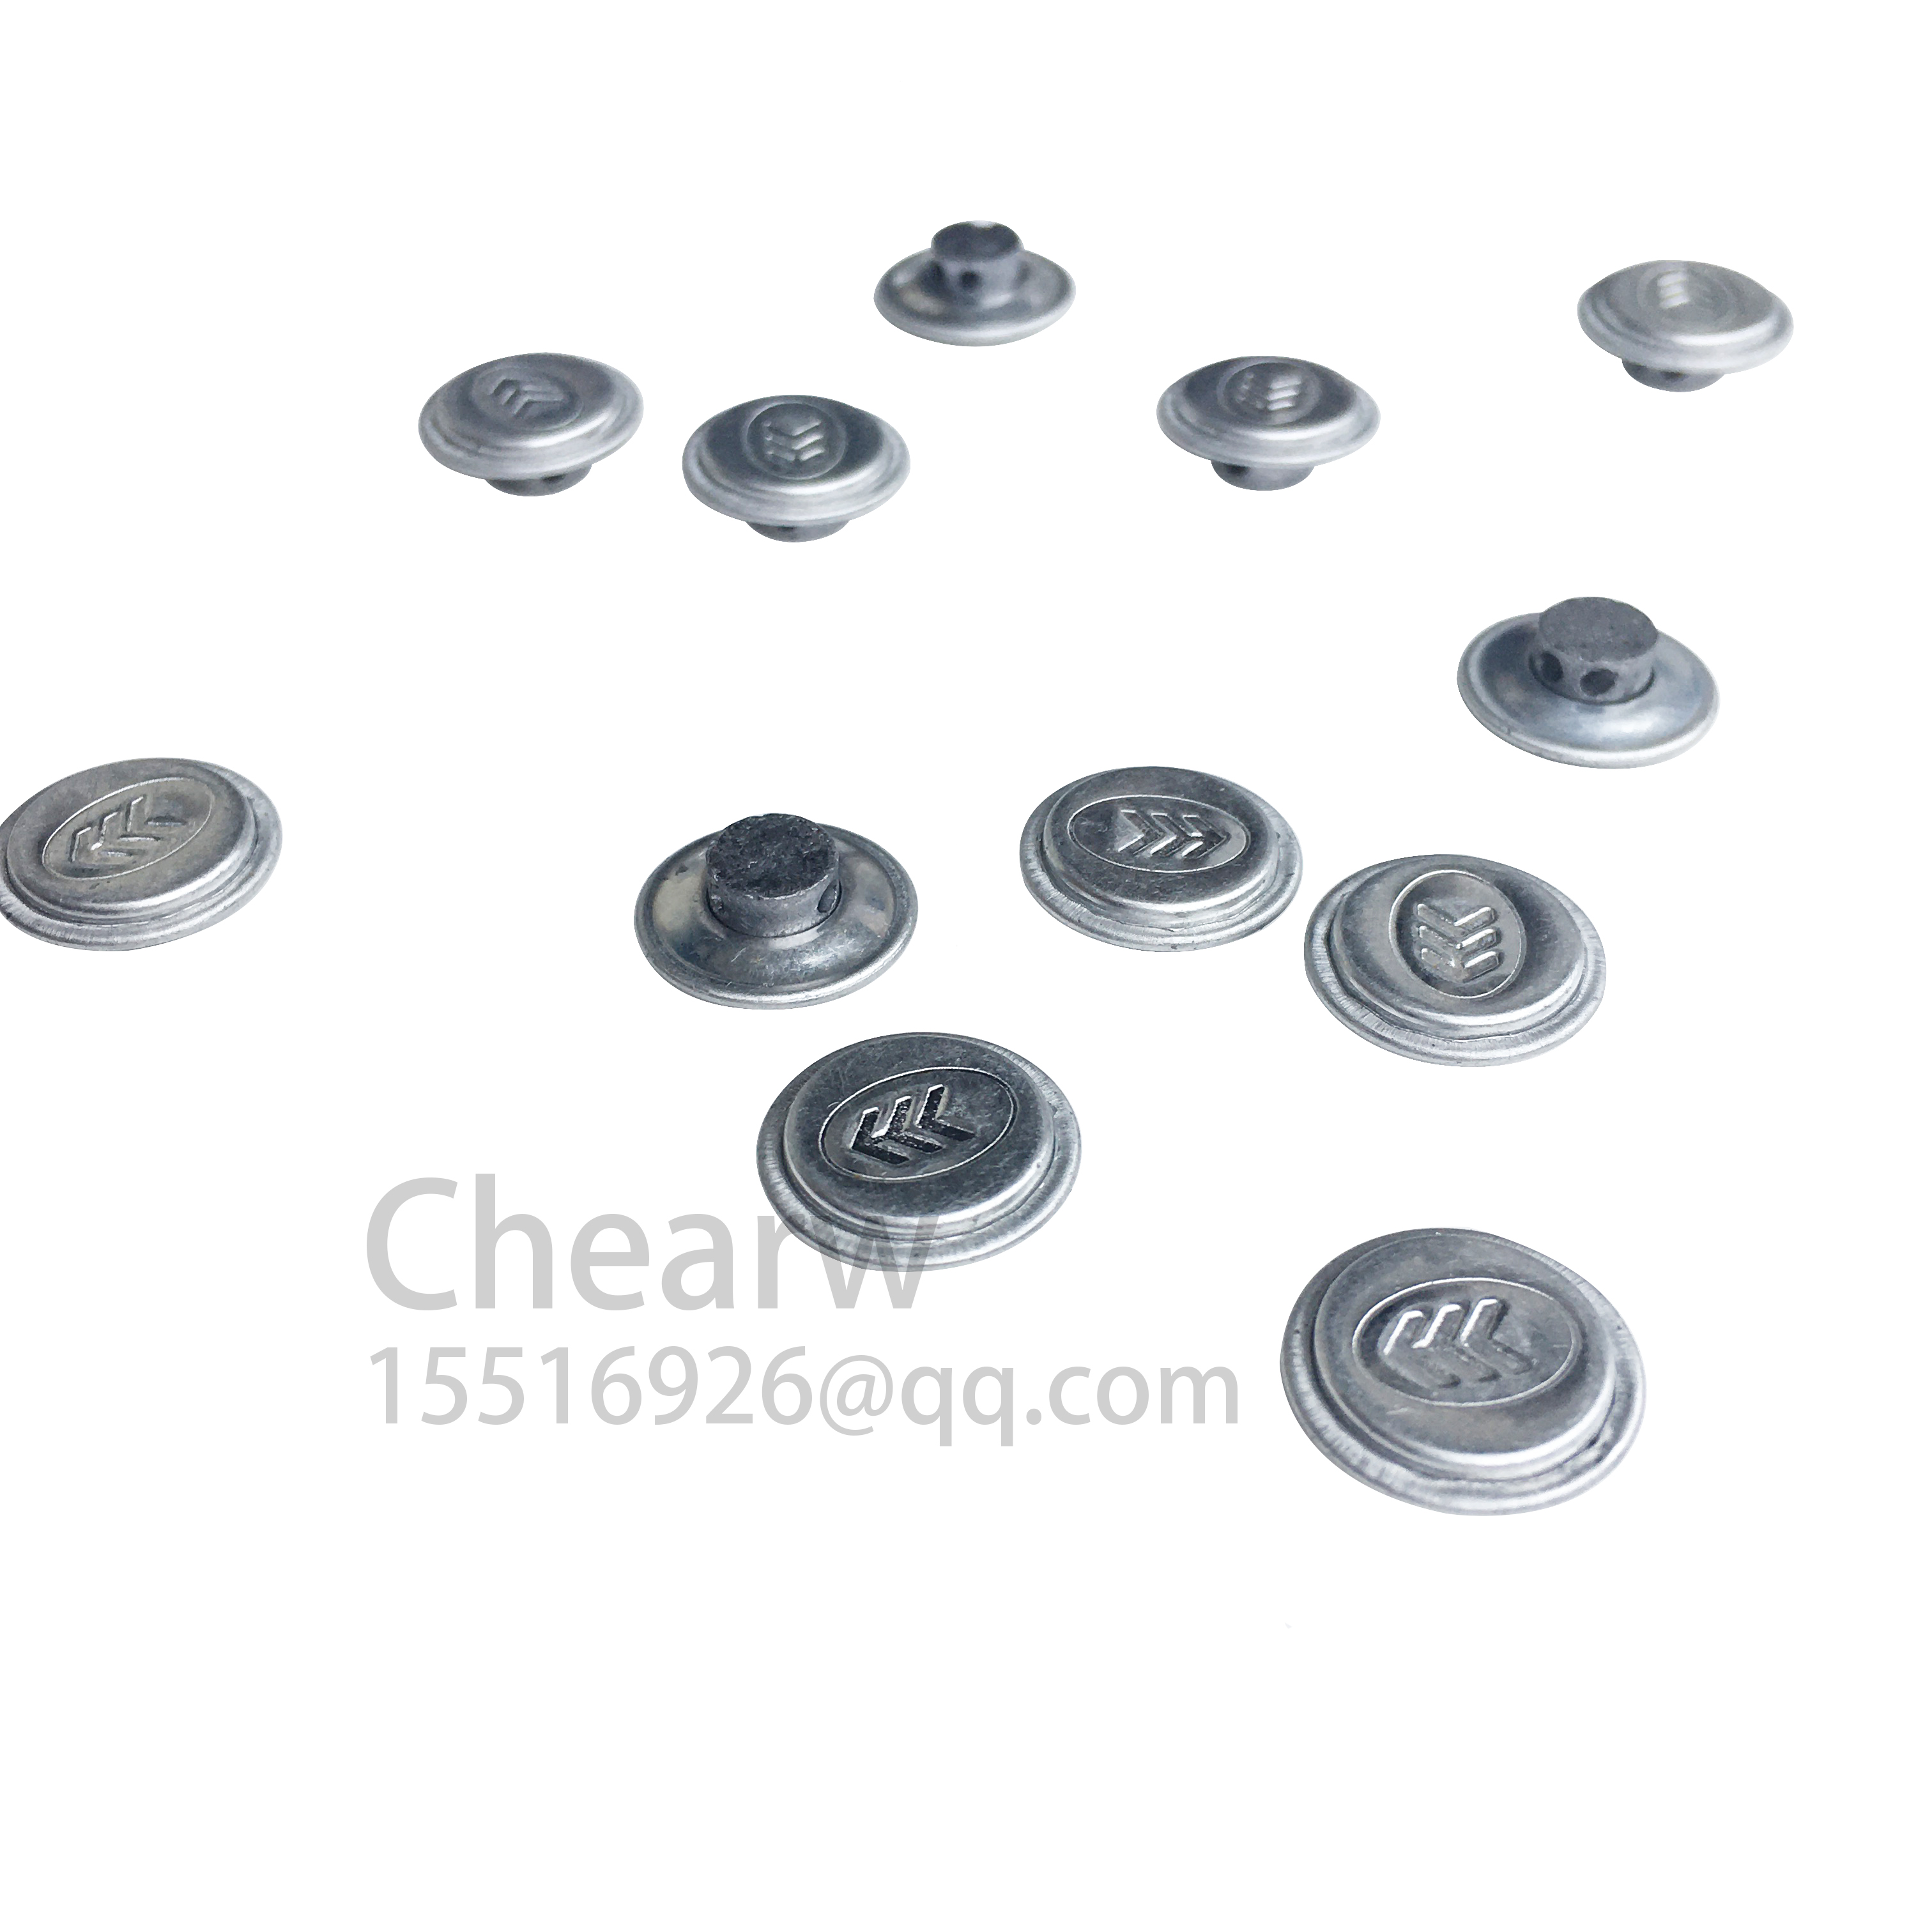 500pieces One Bag Aluminum Shell Disposable Anti-theft Lead Seal Security